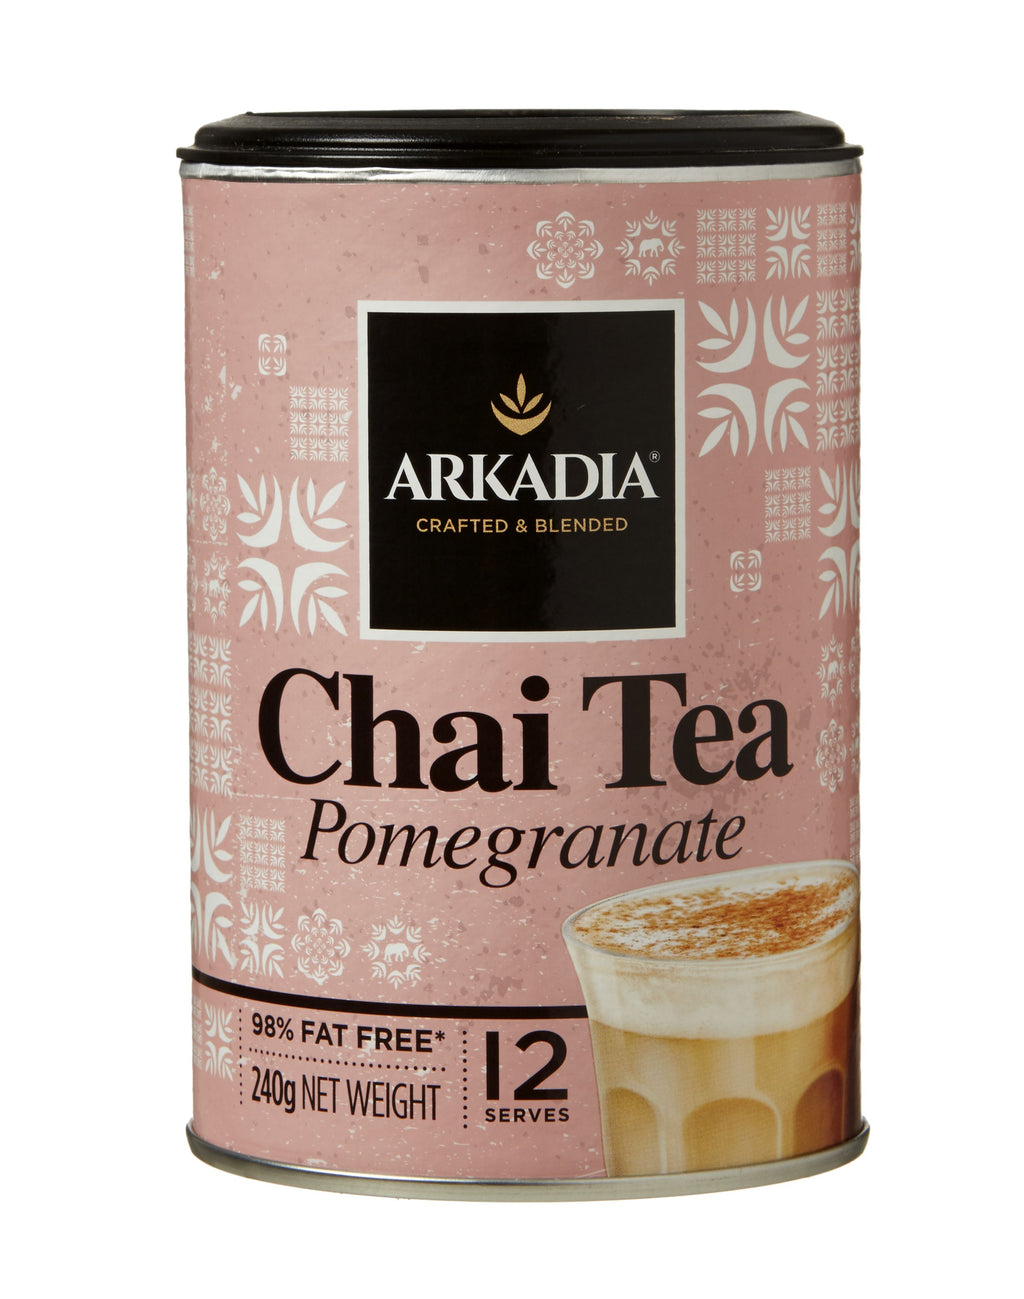 Chai Latte Pomegranate (Pomegranate)